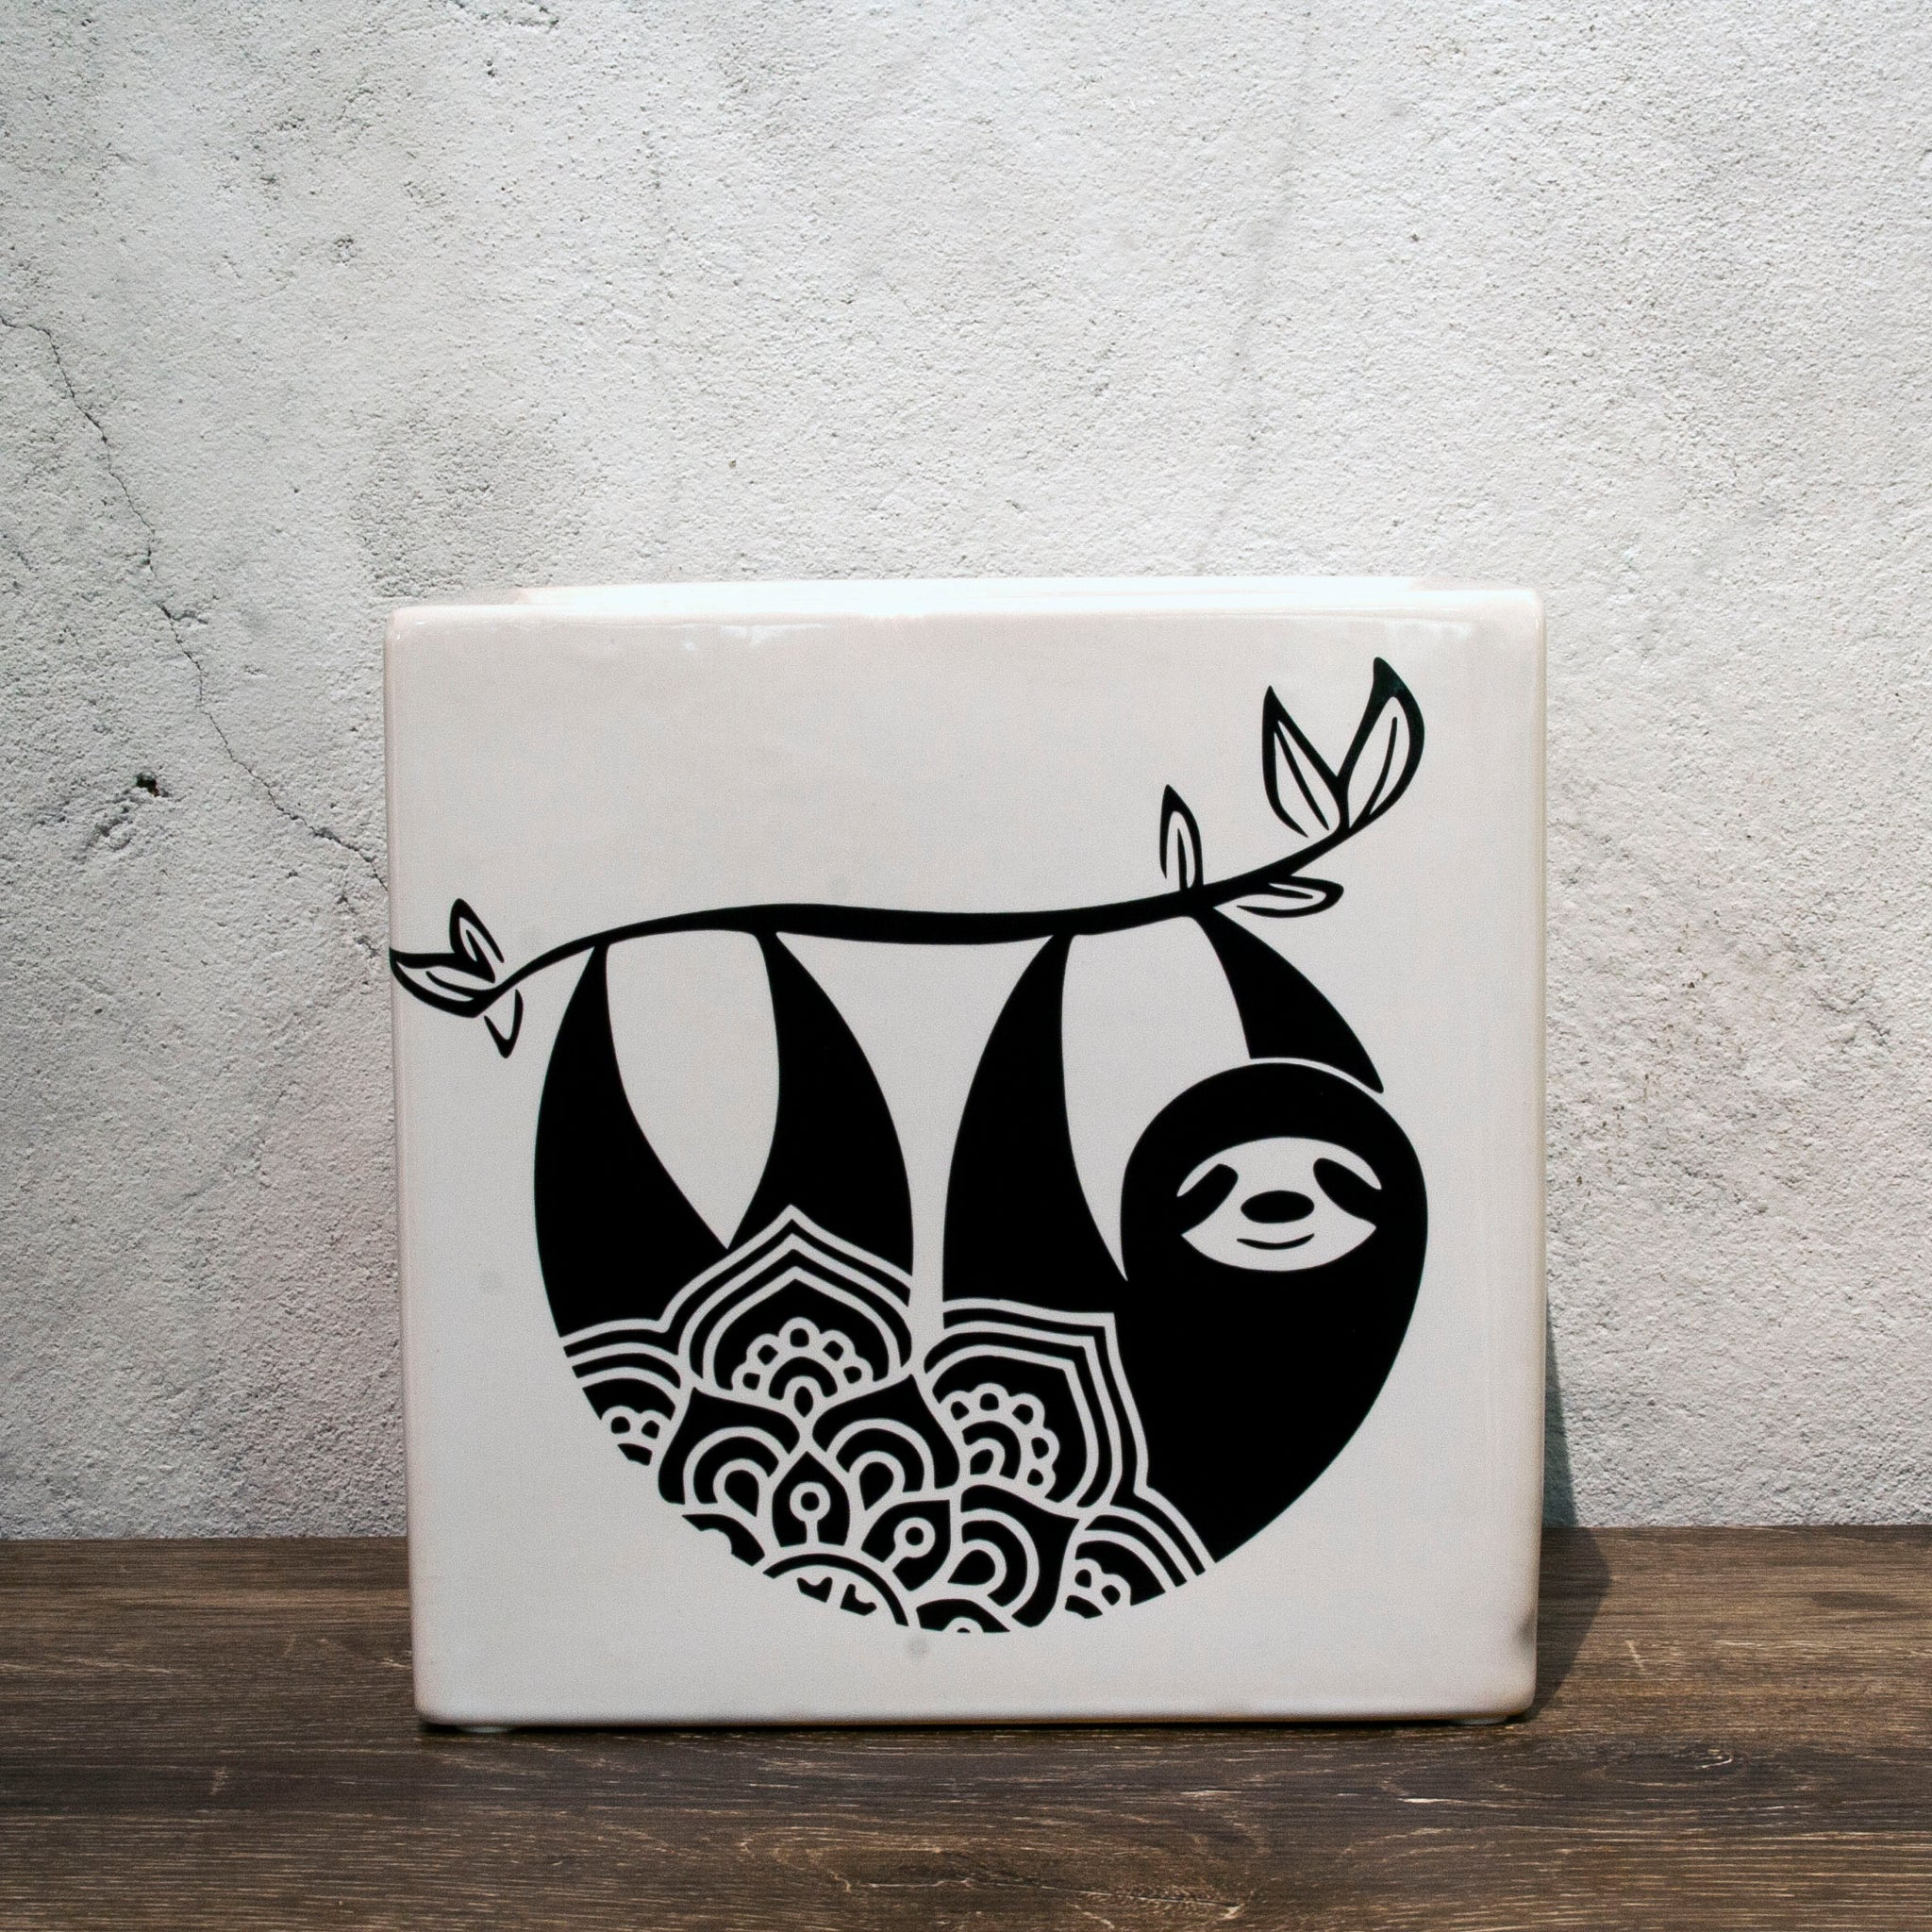 Mandala Sloth Pot Handmade by Ella Jane Glazed White Cube Pot Monochrome